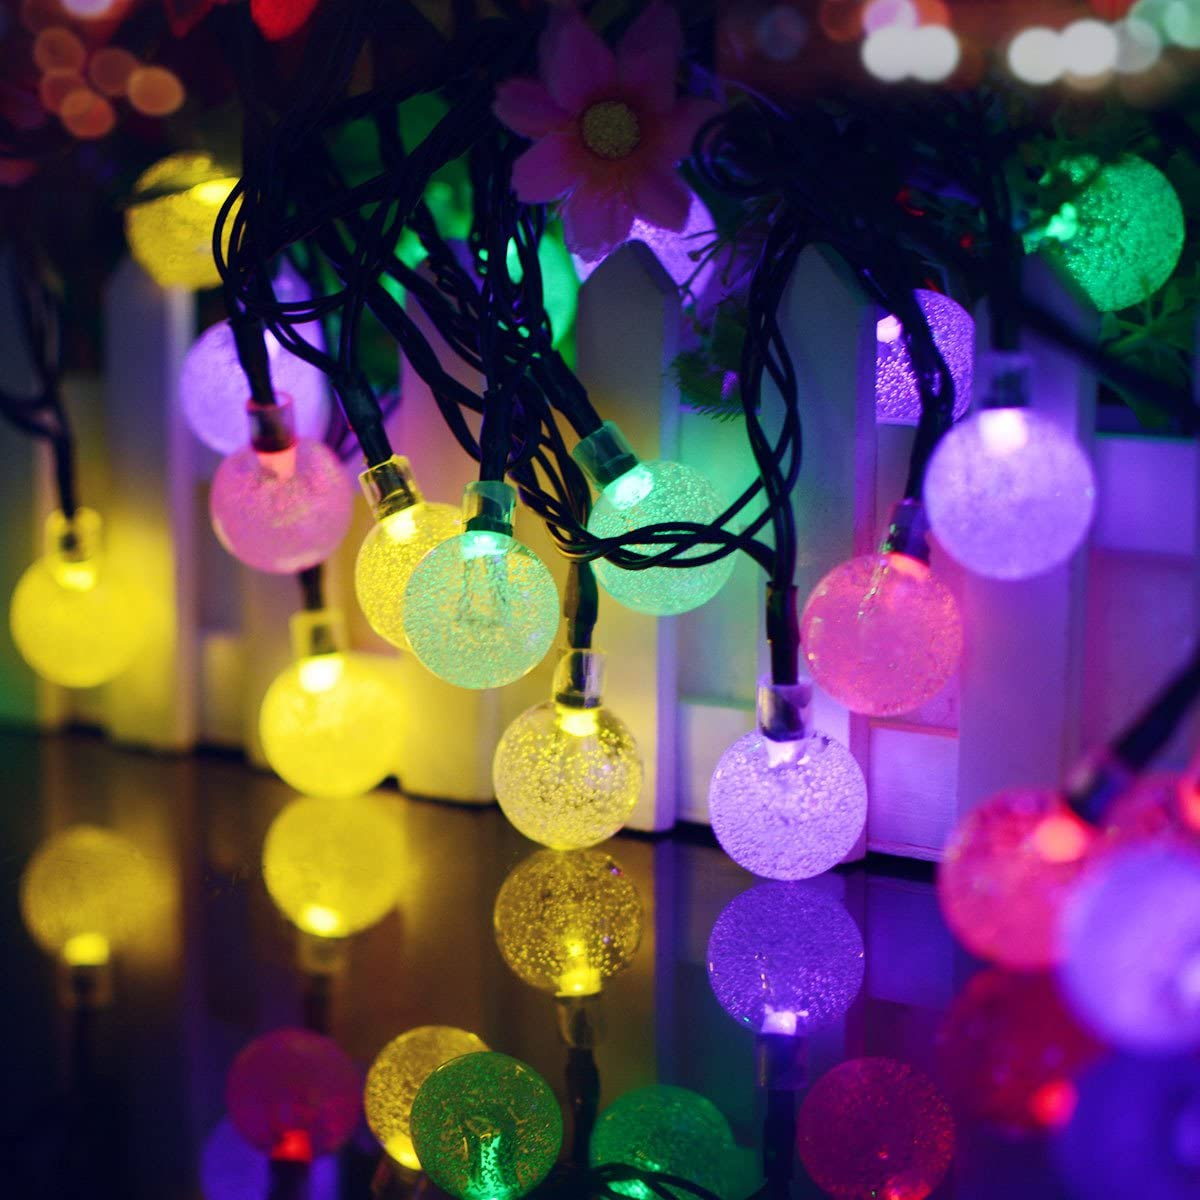 25 feet 40 LED Crystal Ball waterproof Solar Powered String Lights 8 Modes Fairy Lighting for Garden Window lawn Patio Home Xmas Tree Wedding Party Holiday Decorations Commercial Promo (Multicolor)